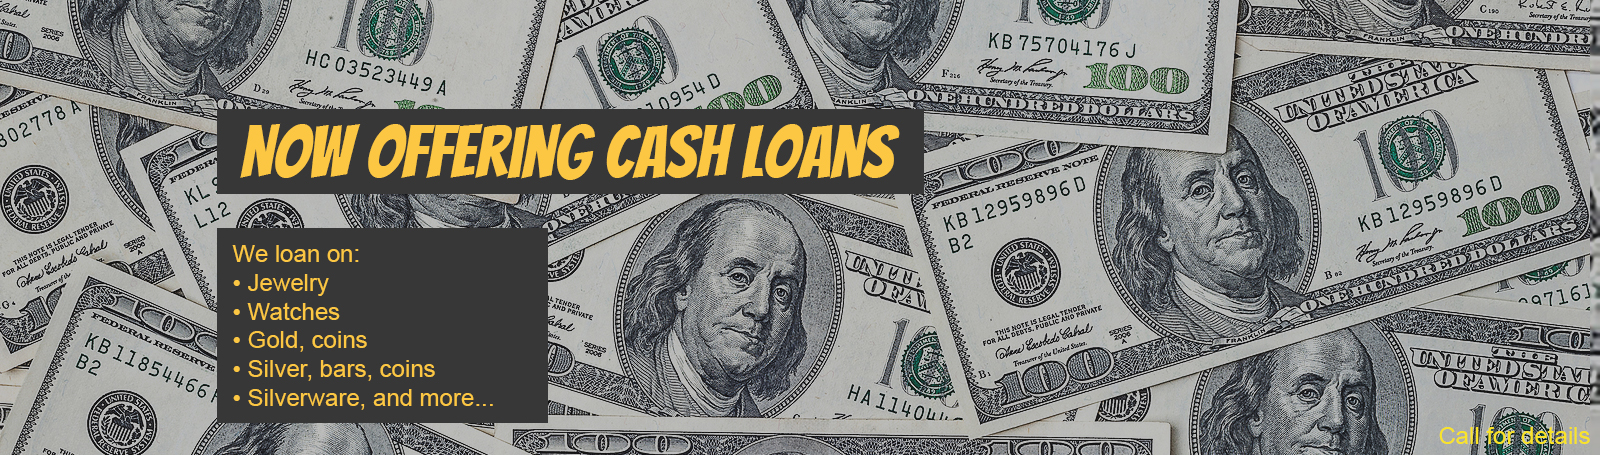 Now Offering Cash Loans - We loan on: Jewelry, Watches, Gold, Coins, Silver, Bars, coins, Silverware and more...